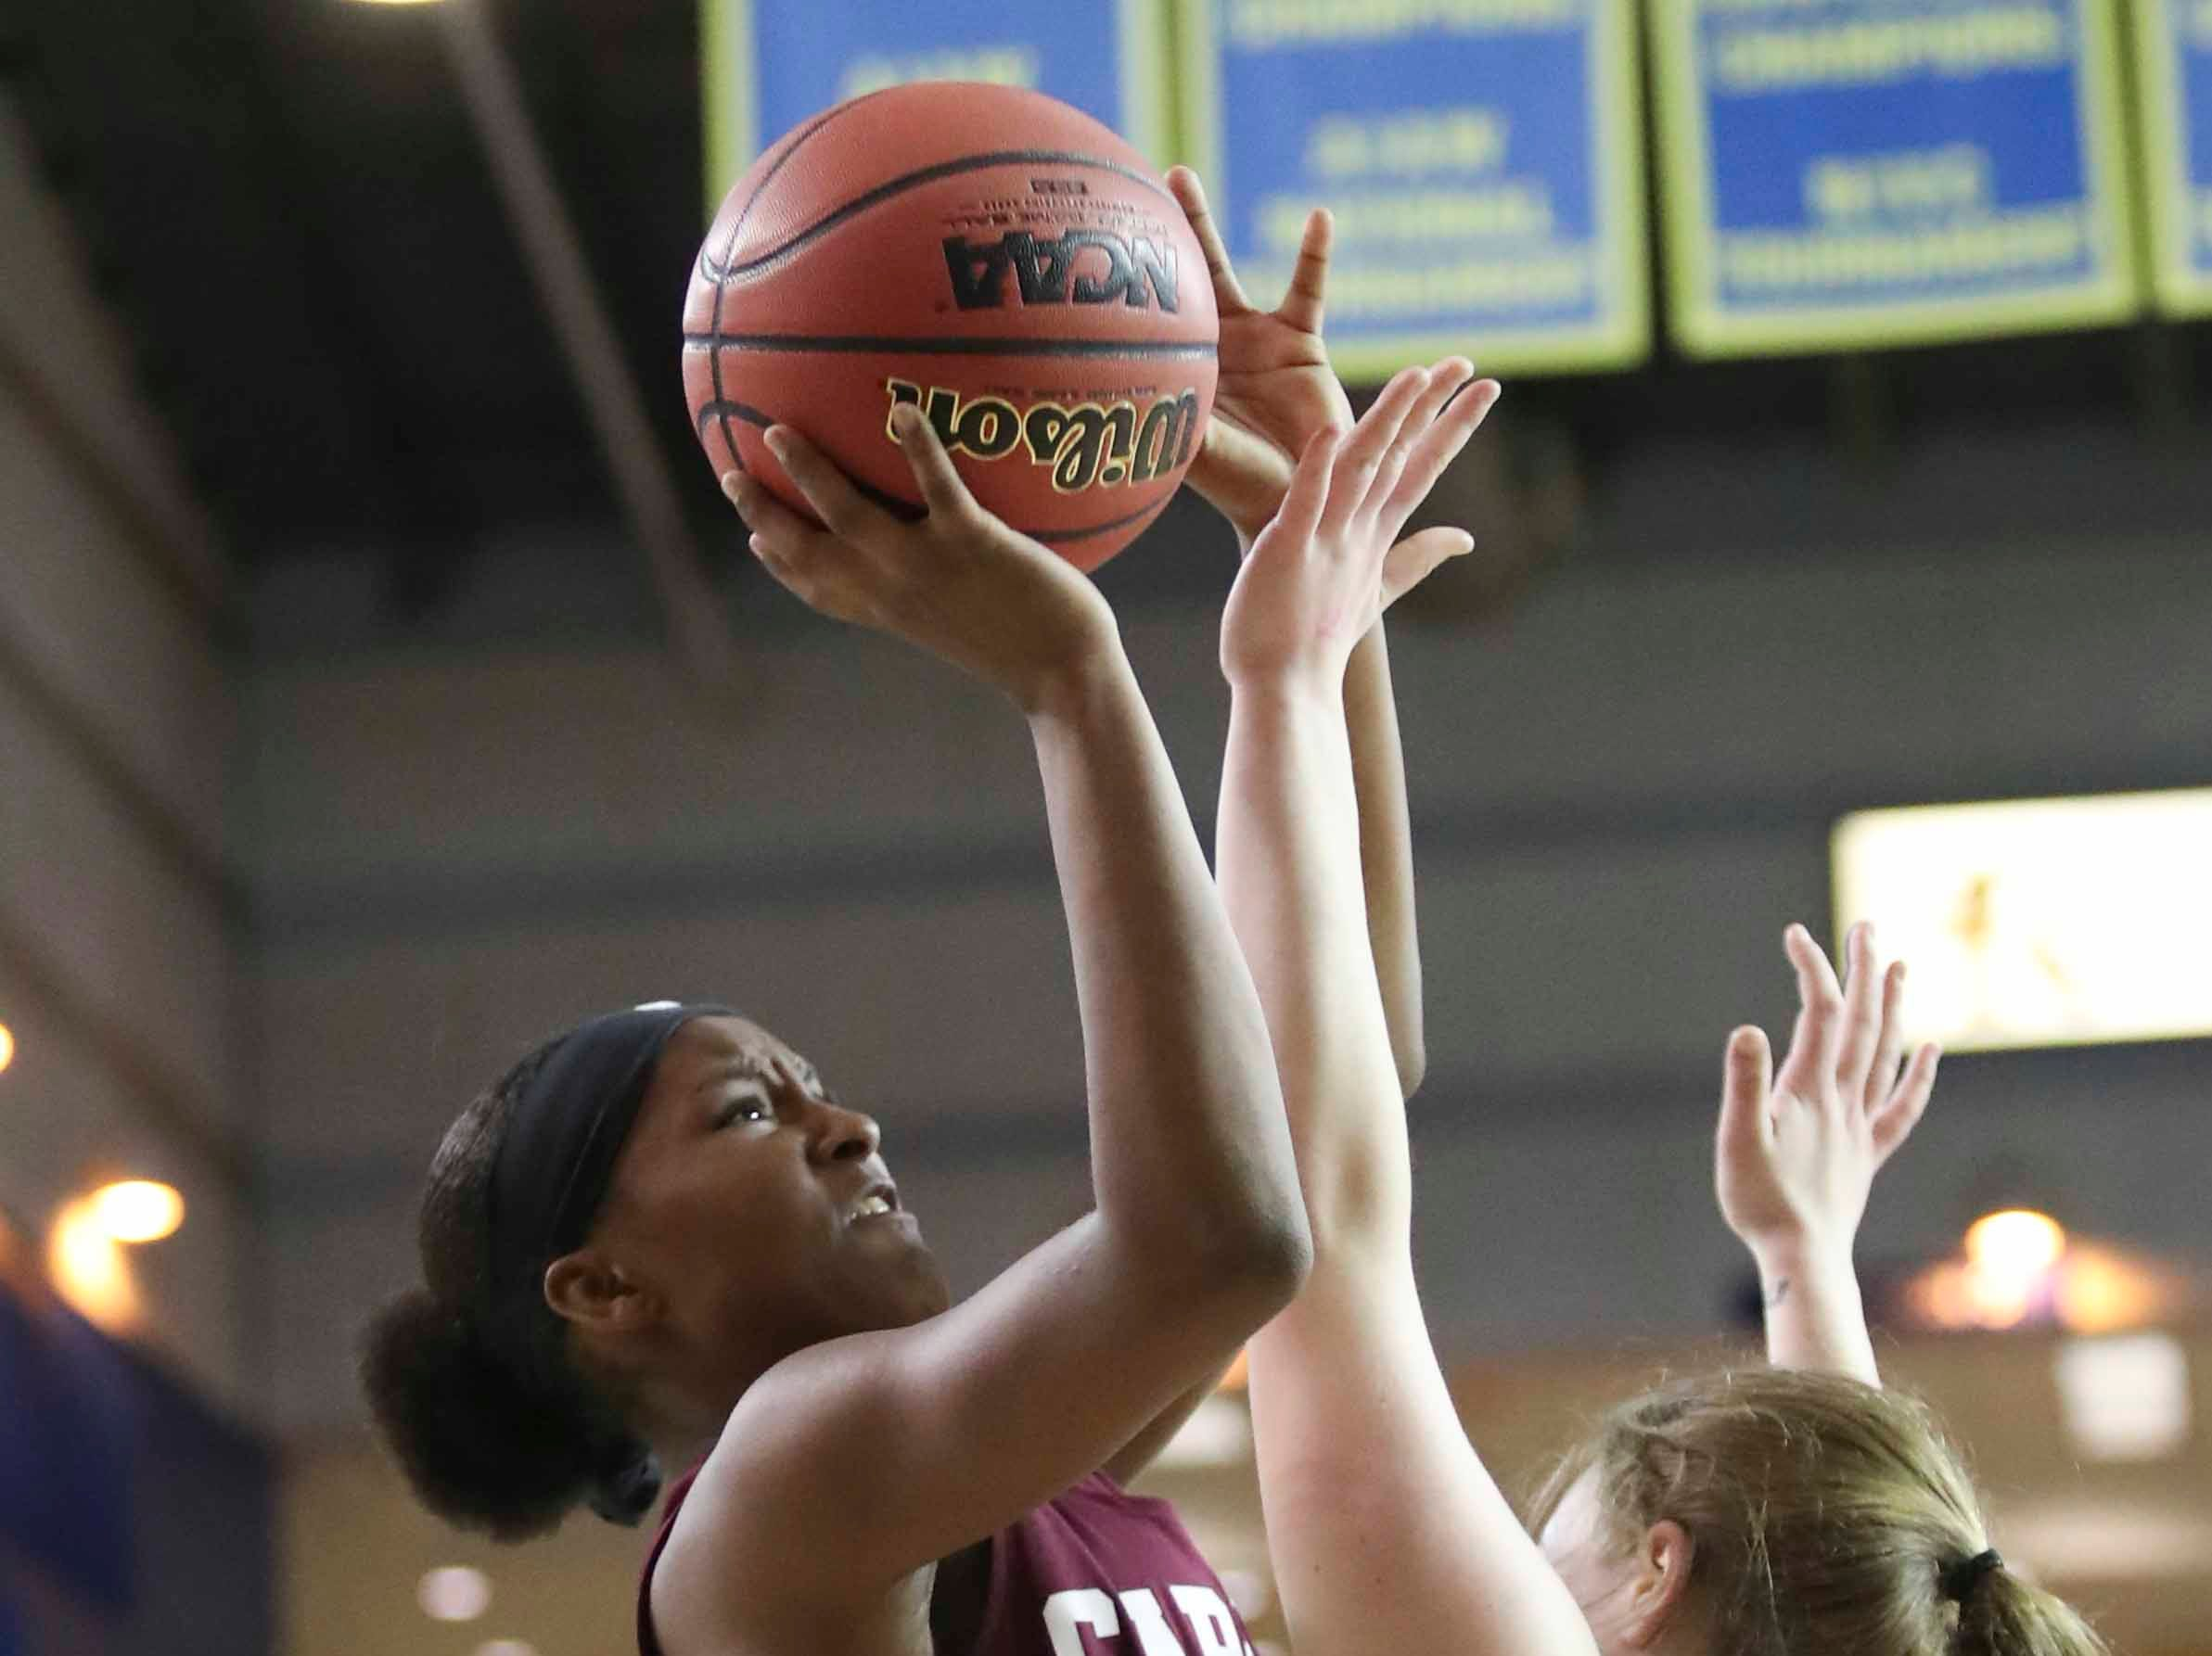 Caravel's Sasha Marvel (left) shoots against St. Elizabeth's Rory Ciszkowski in the second half of Caravel's 67-58 win in a DIAA state tournament semifinal at the Bob Carpenter Center Wednesday.